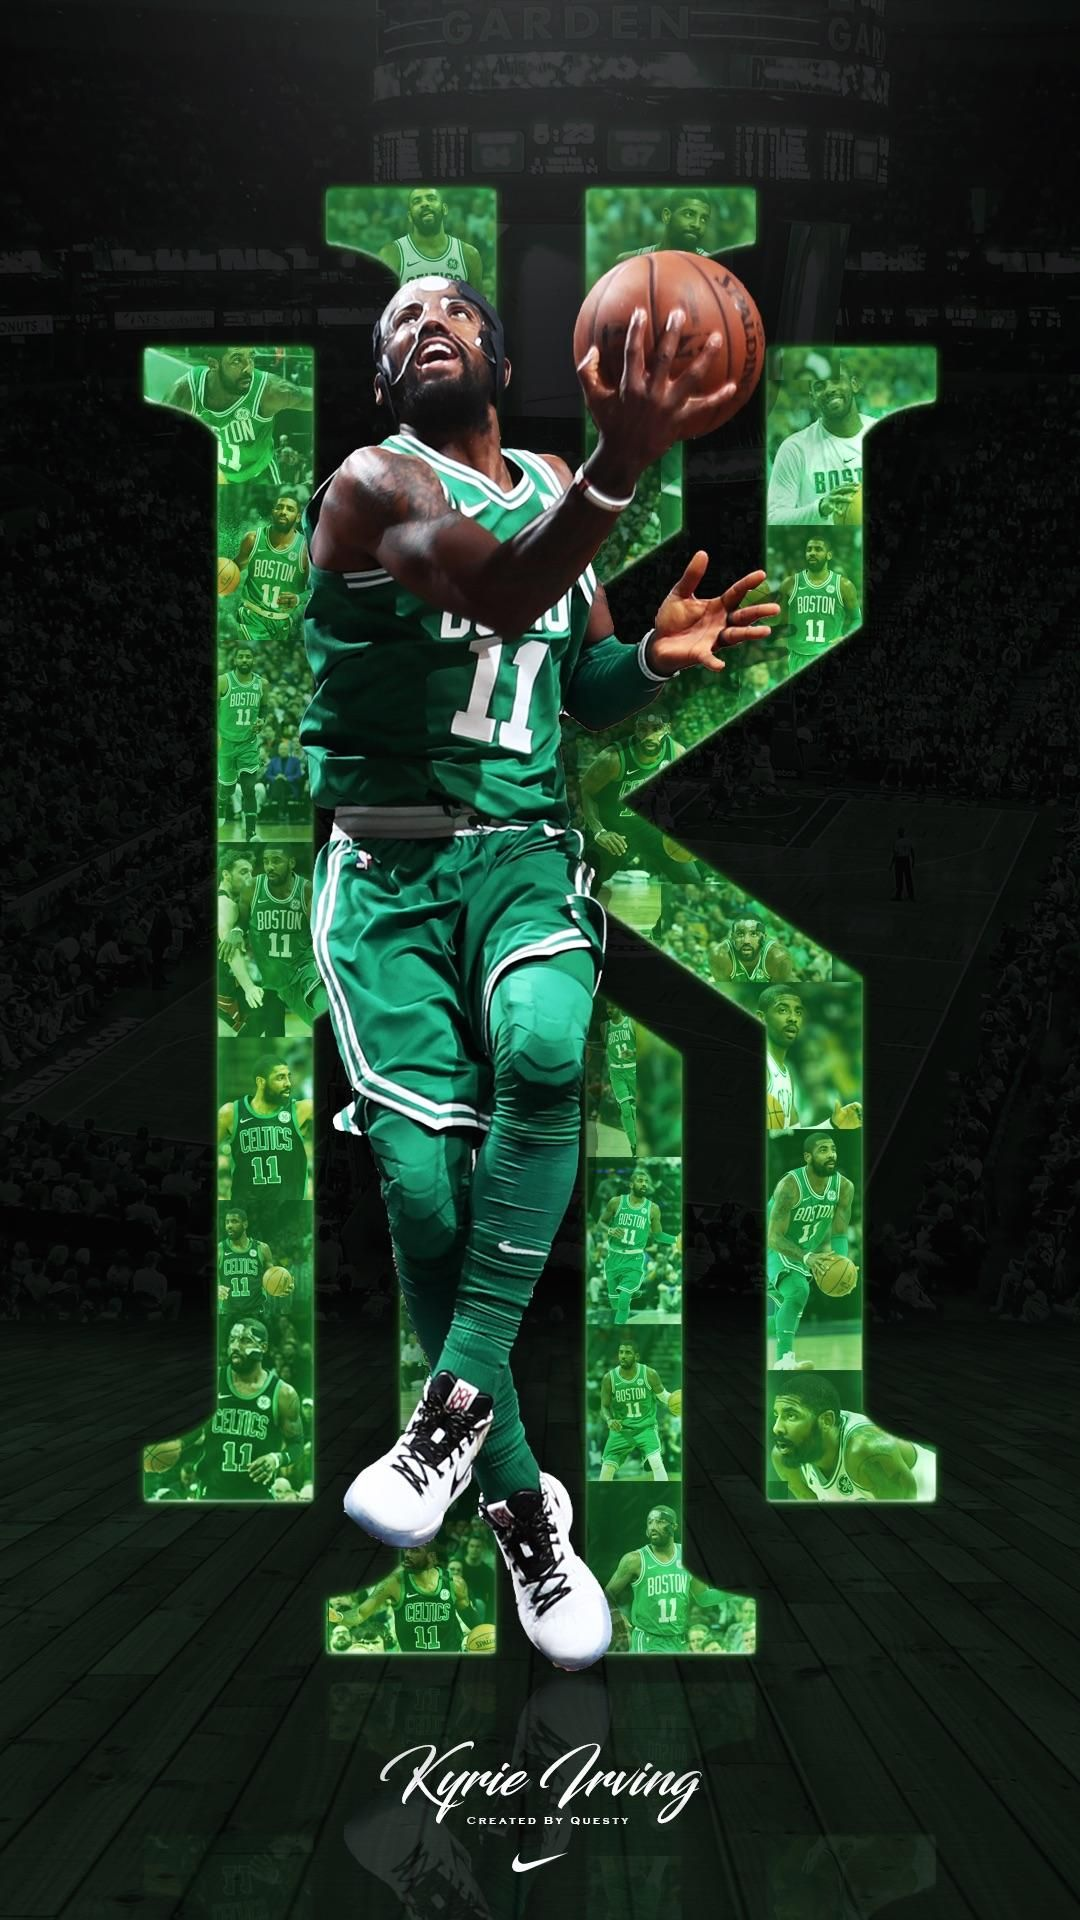 Cool Basketball Background Image Irving wallpapers Kyrie irving 1080x1920